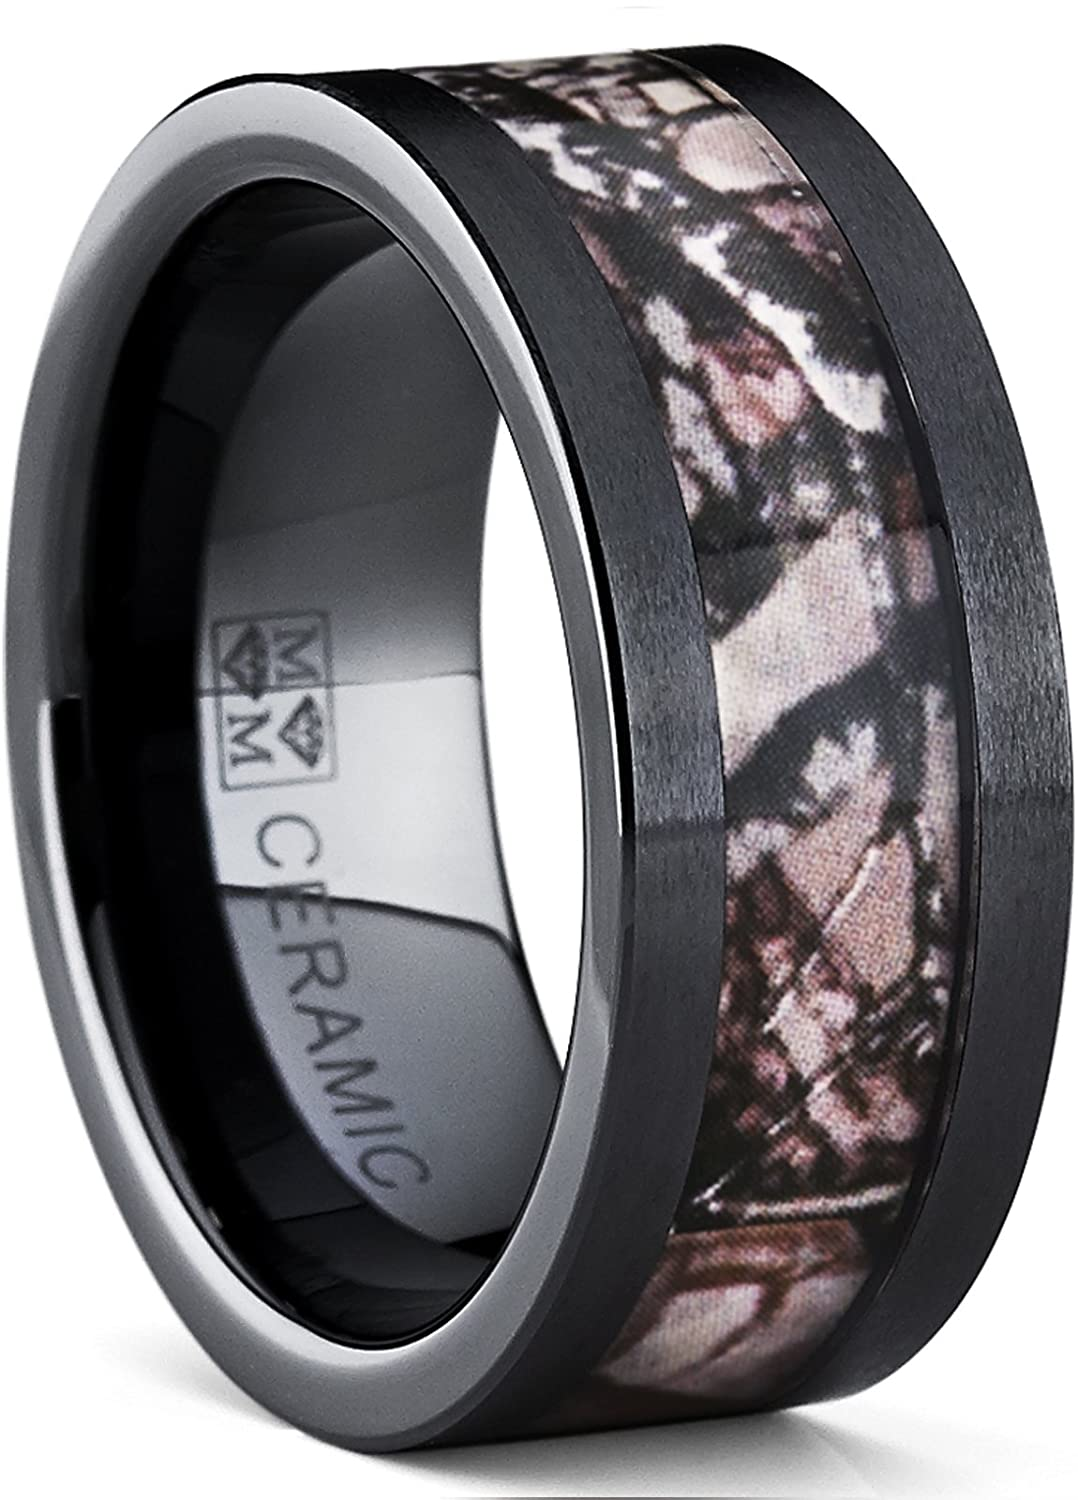 Black Ceramic Hunting Camo Ring With Real Forest Trees Max Wedding Band 9mmamazon: Ceramic Camo Wedding Rings At Websimilar.org